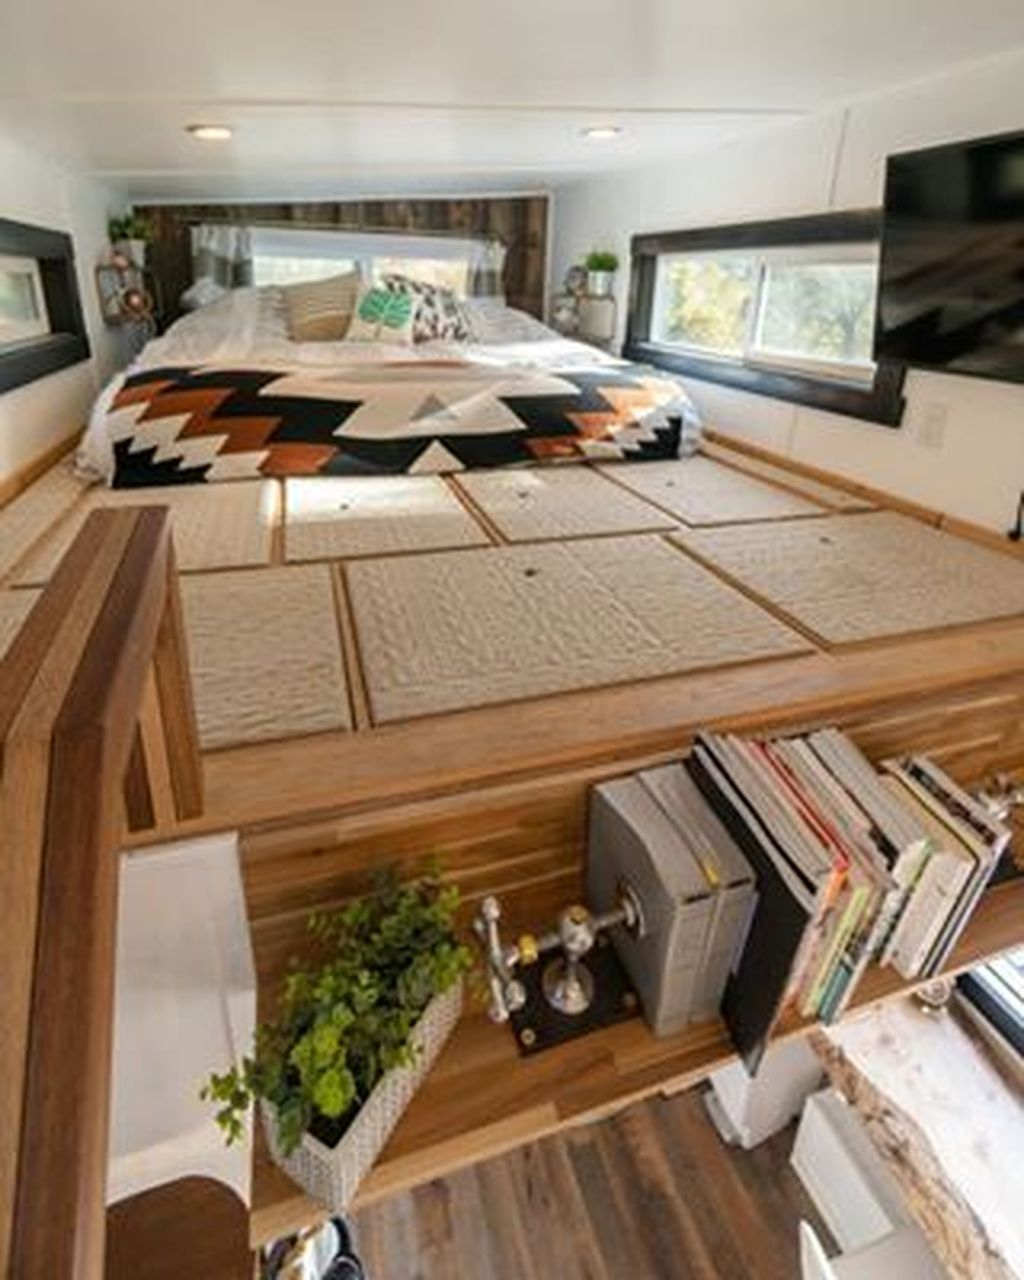 Cool Hidden Storage Design Ideas For Small Spaces To Try16